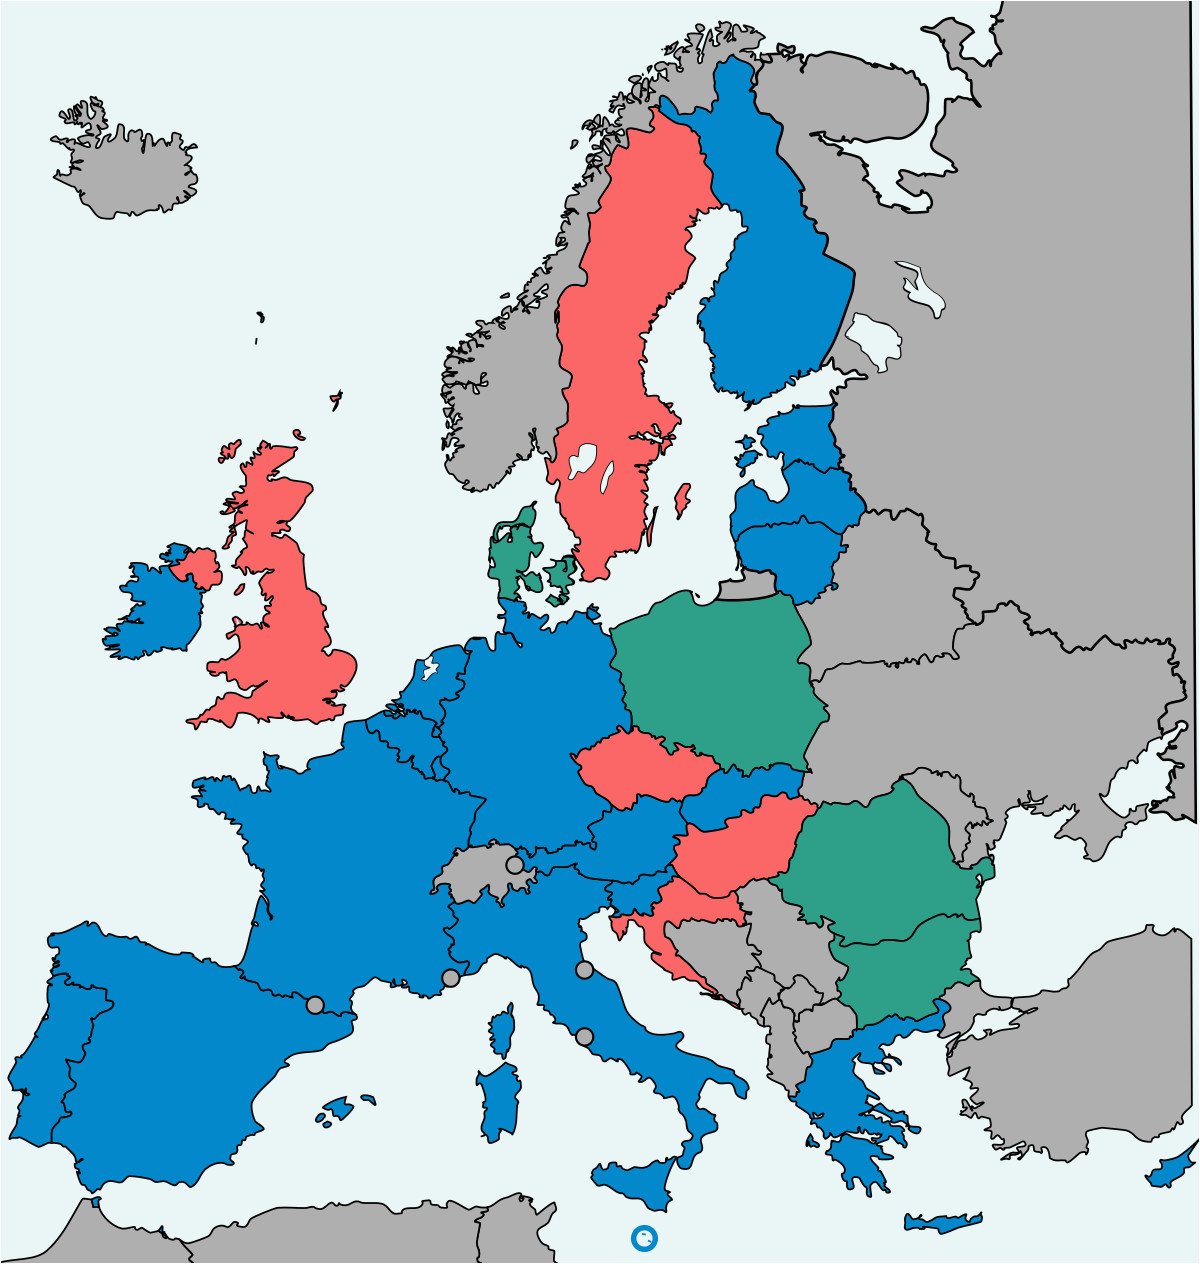 euro plus pact wikipedia